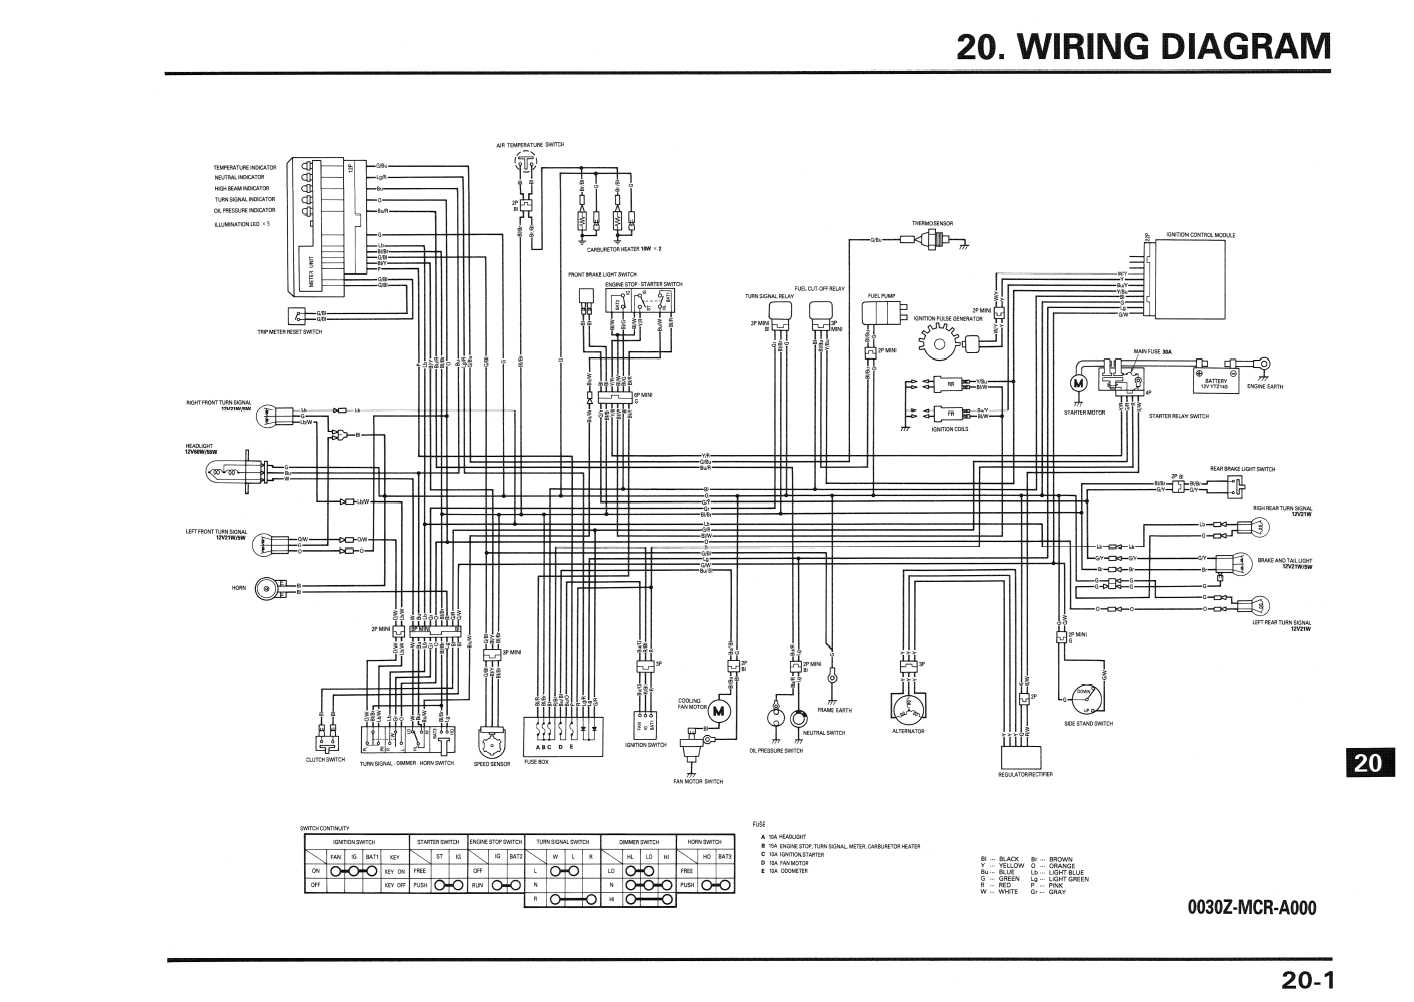 Honda Shadow Ace 1100 Turn Signal Wiring Diagram from diagramweb.net